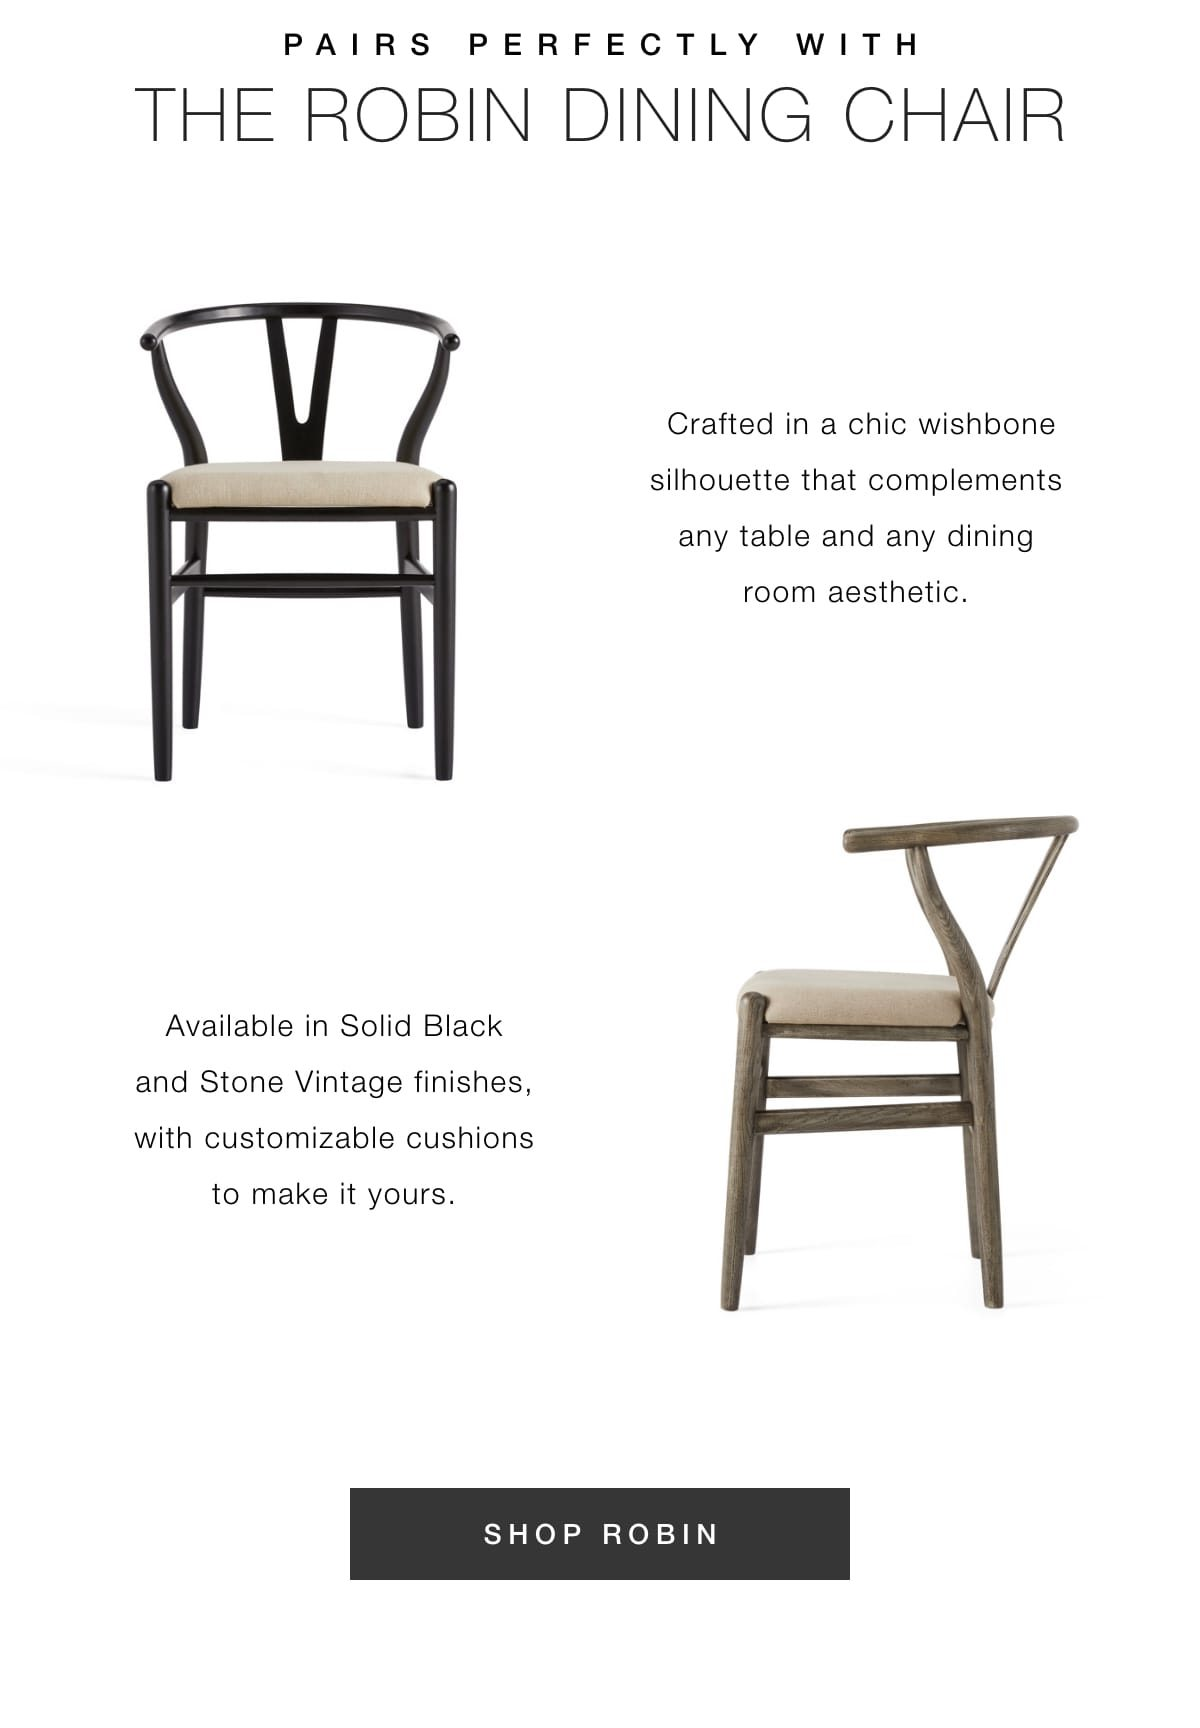 Pairs perfectly with the Robin dining chair.